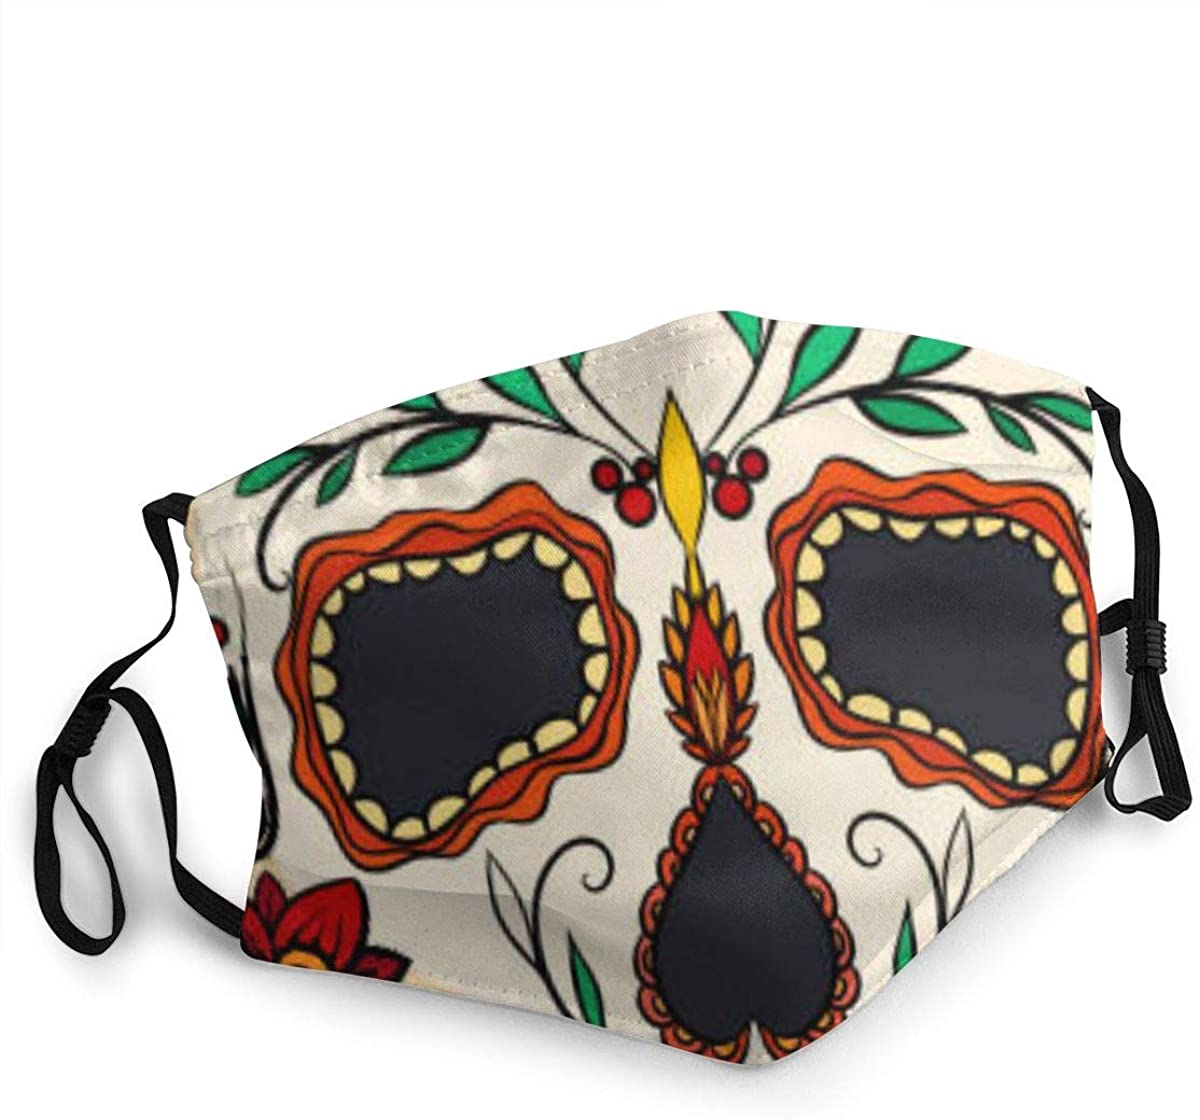 Face Mask, Comfortable Non-Elastic Ear Loops,Sugar Skull Washable and Reusable, Unisex Mouth Mask